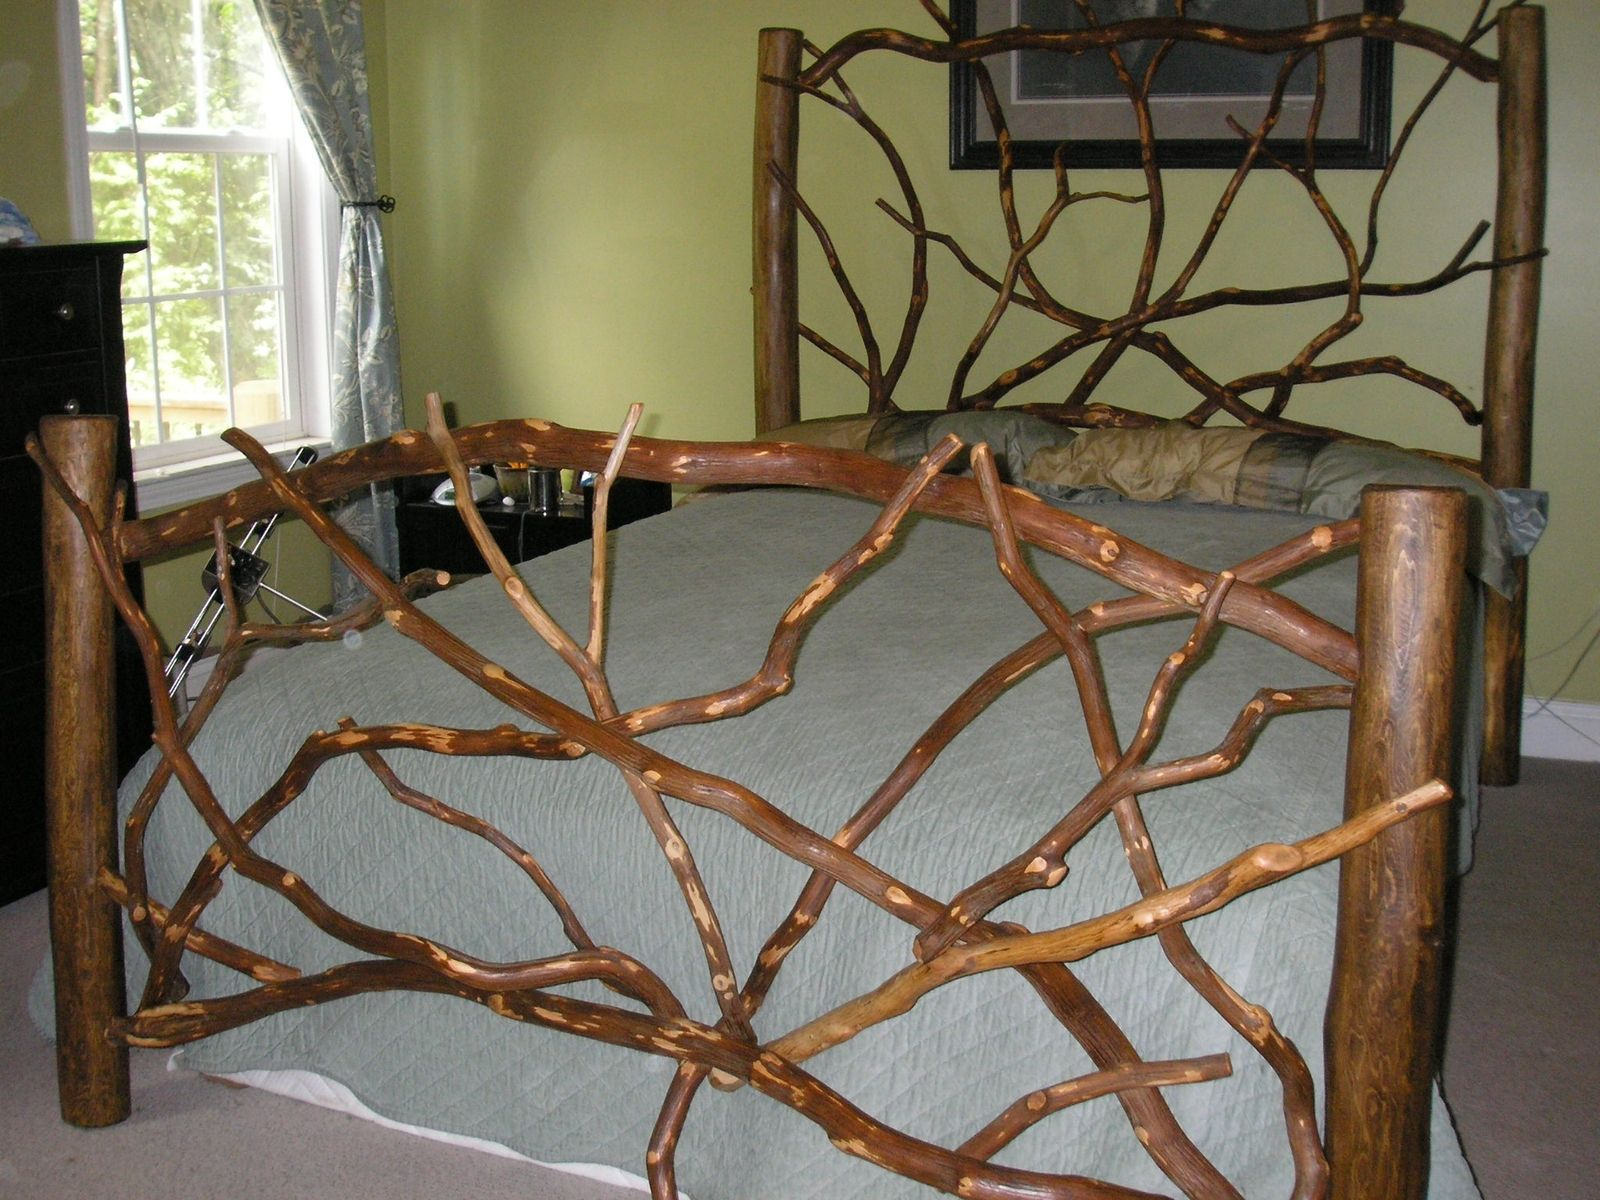 Queen Size Headboard And Footboard Not As Sturdy As The